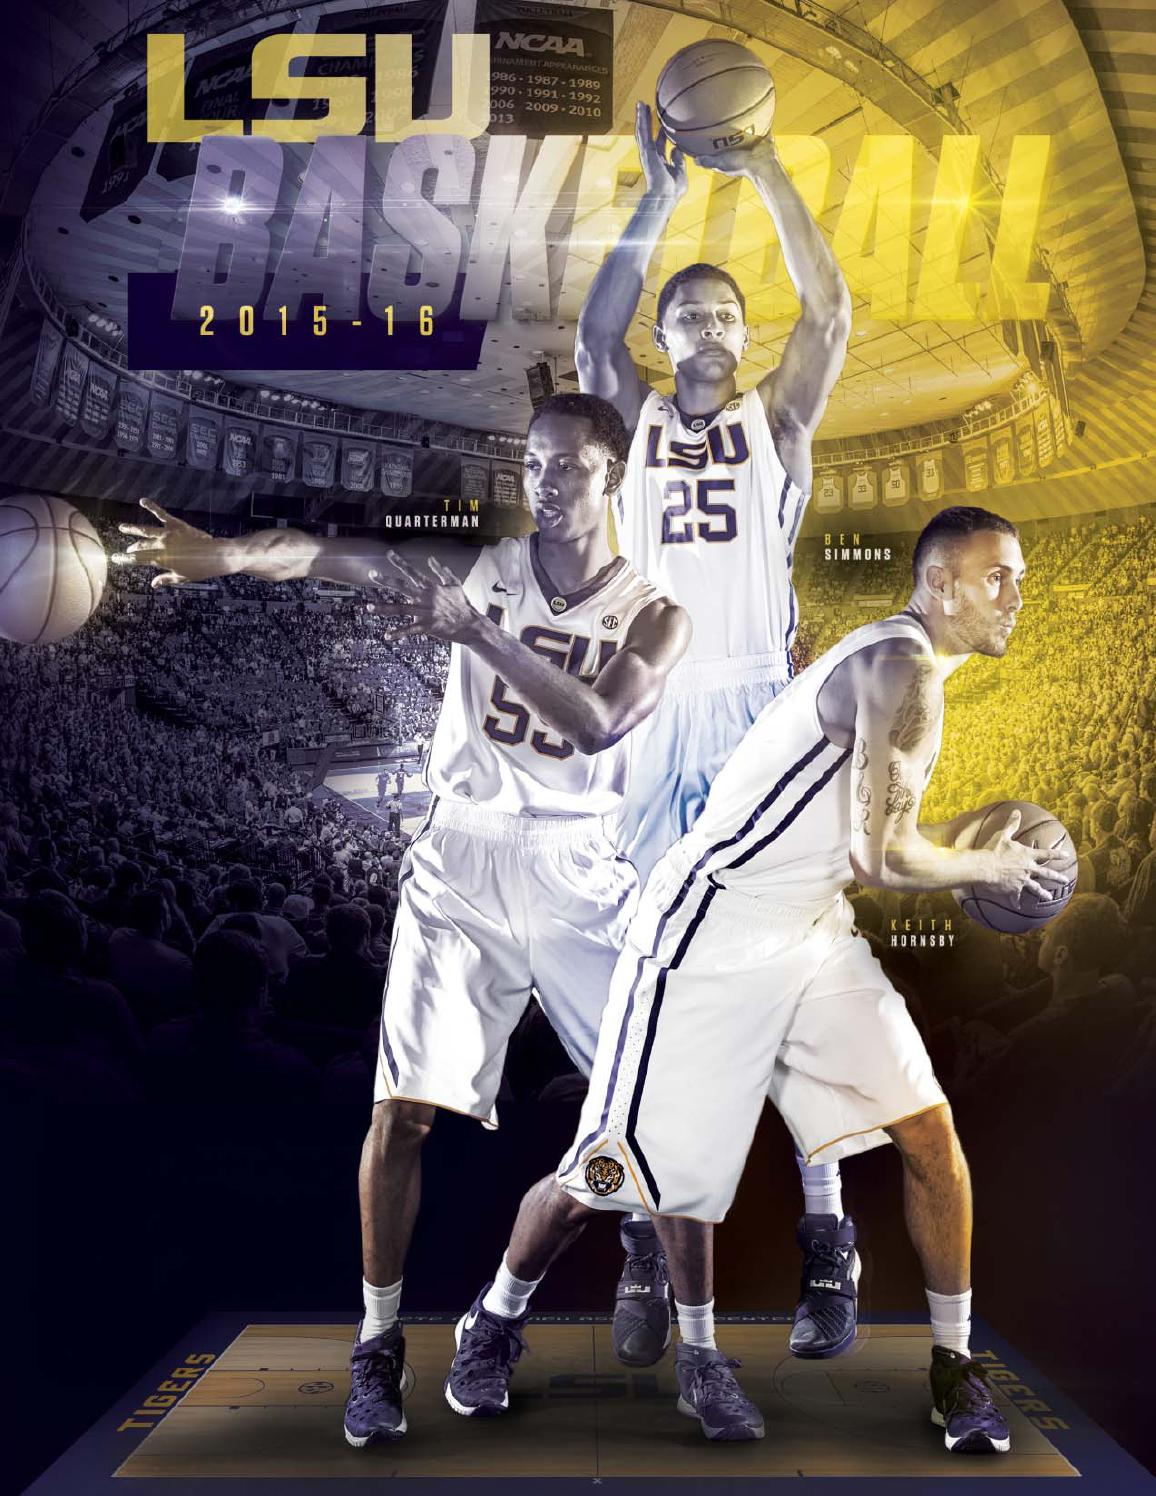 3c90b5531 2015-16 LSU Men s Basketball Media Guide by LSU Athletics - issuu